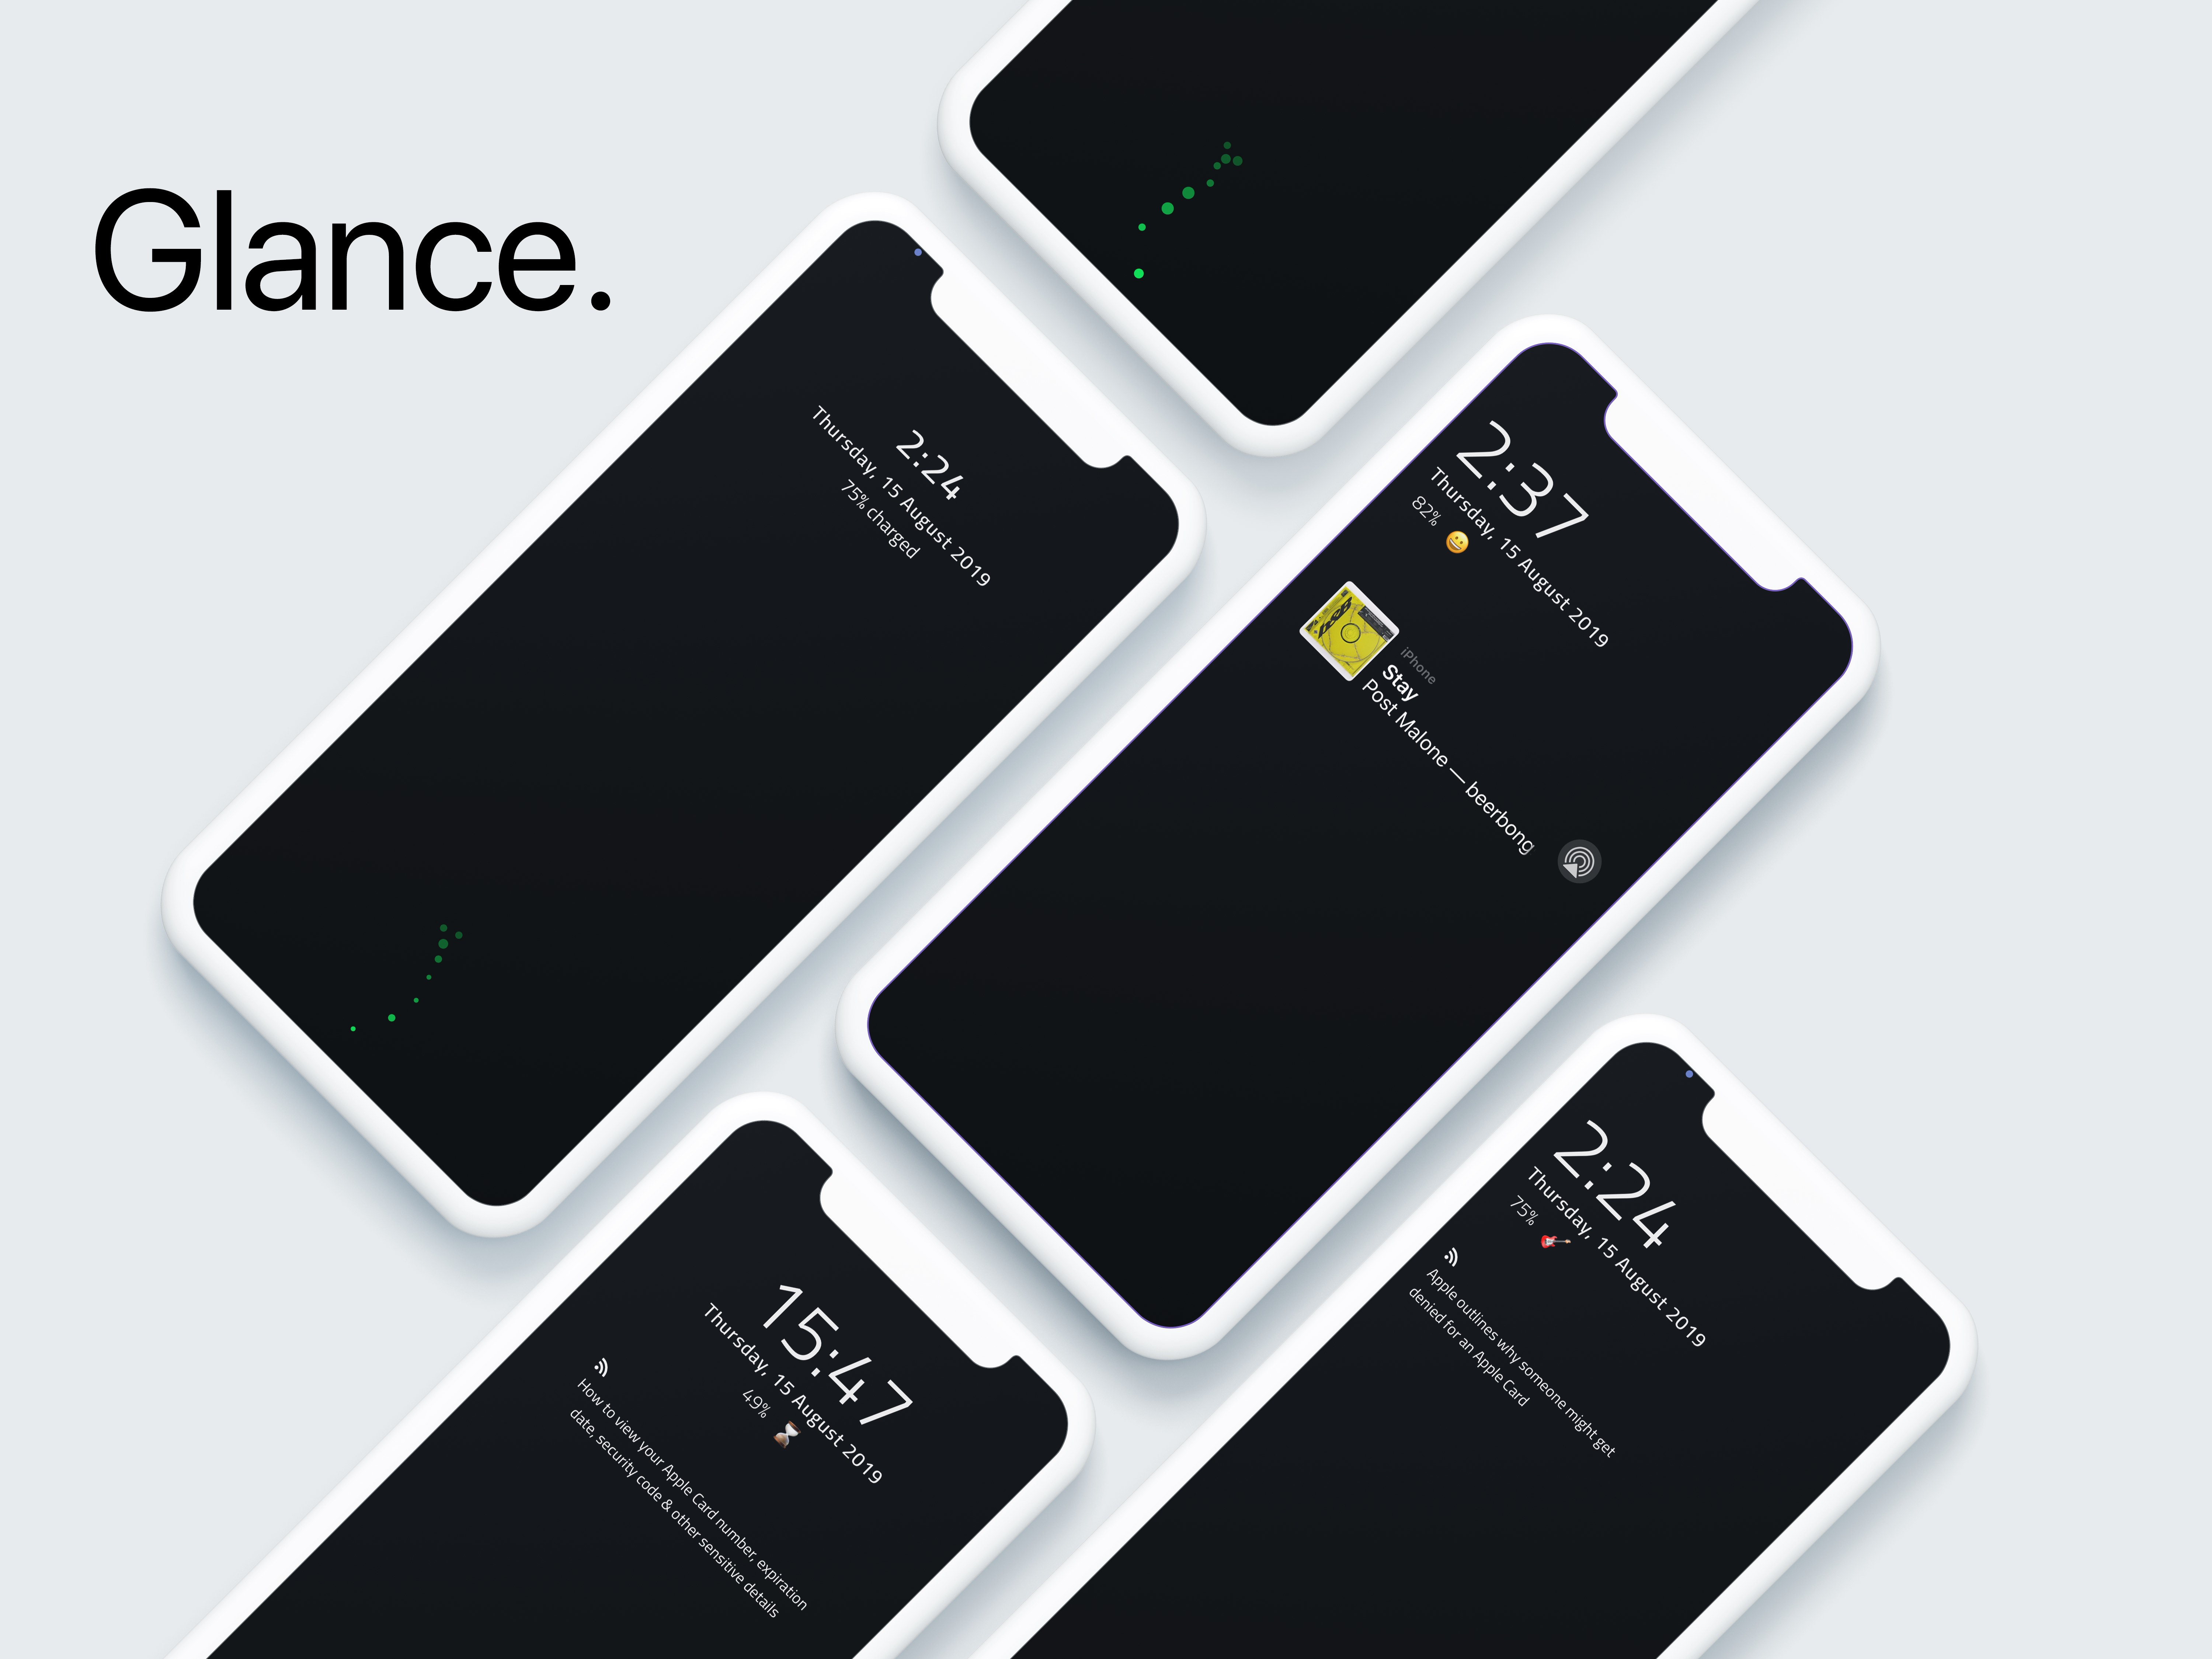 Glance brings a new charging animation and battery data to